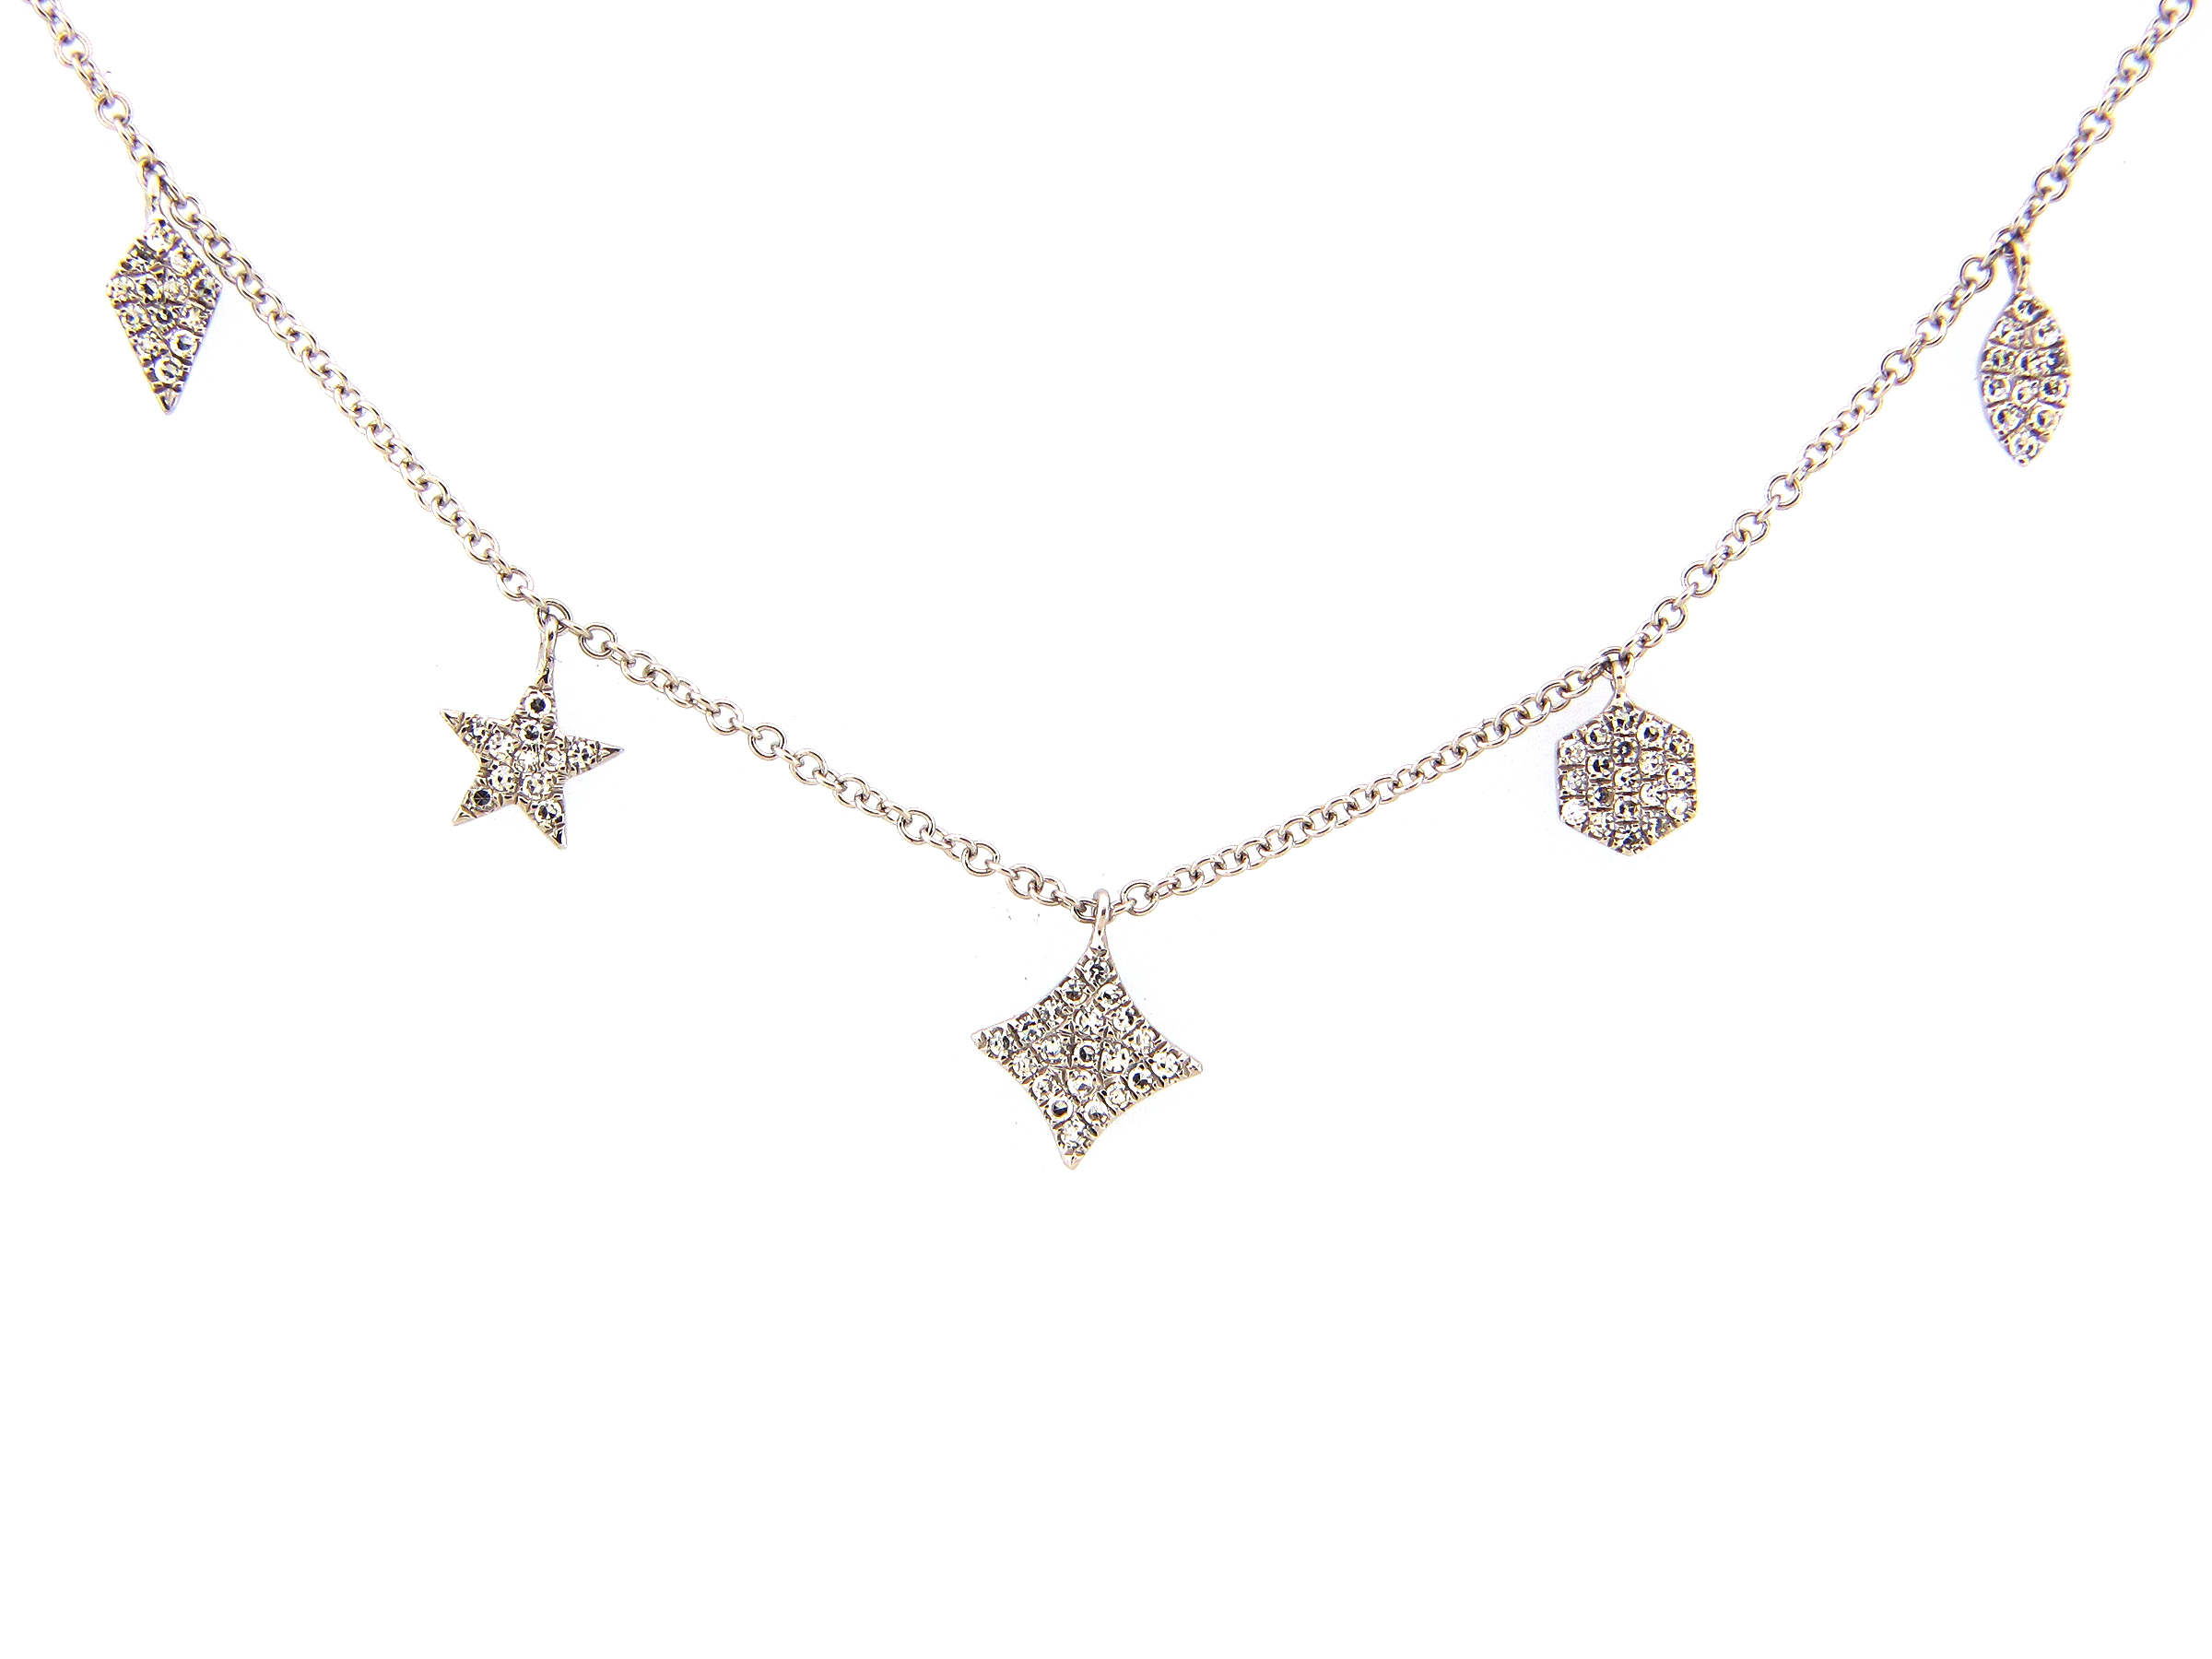 Diamond 5 Charm Necklace